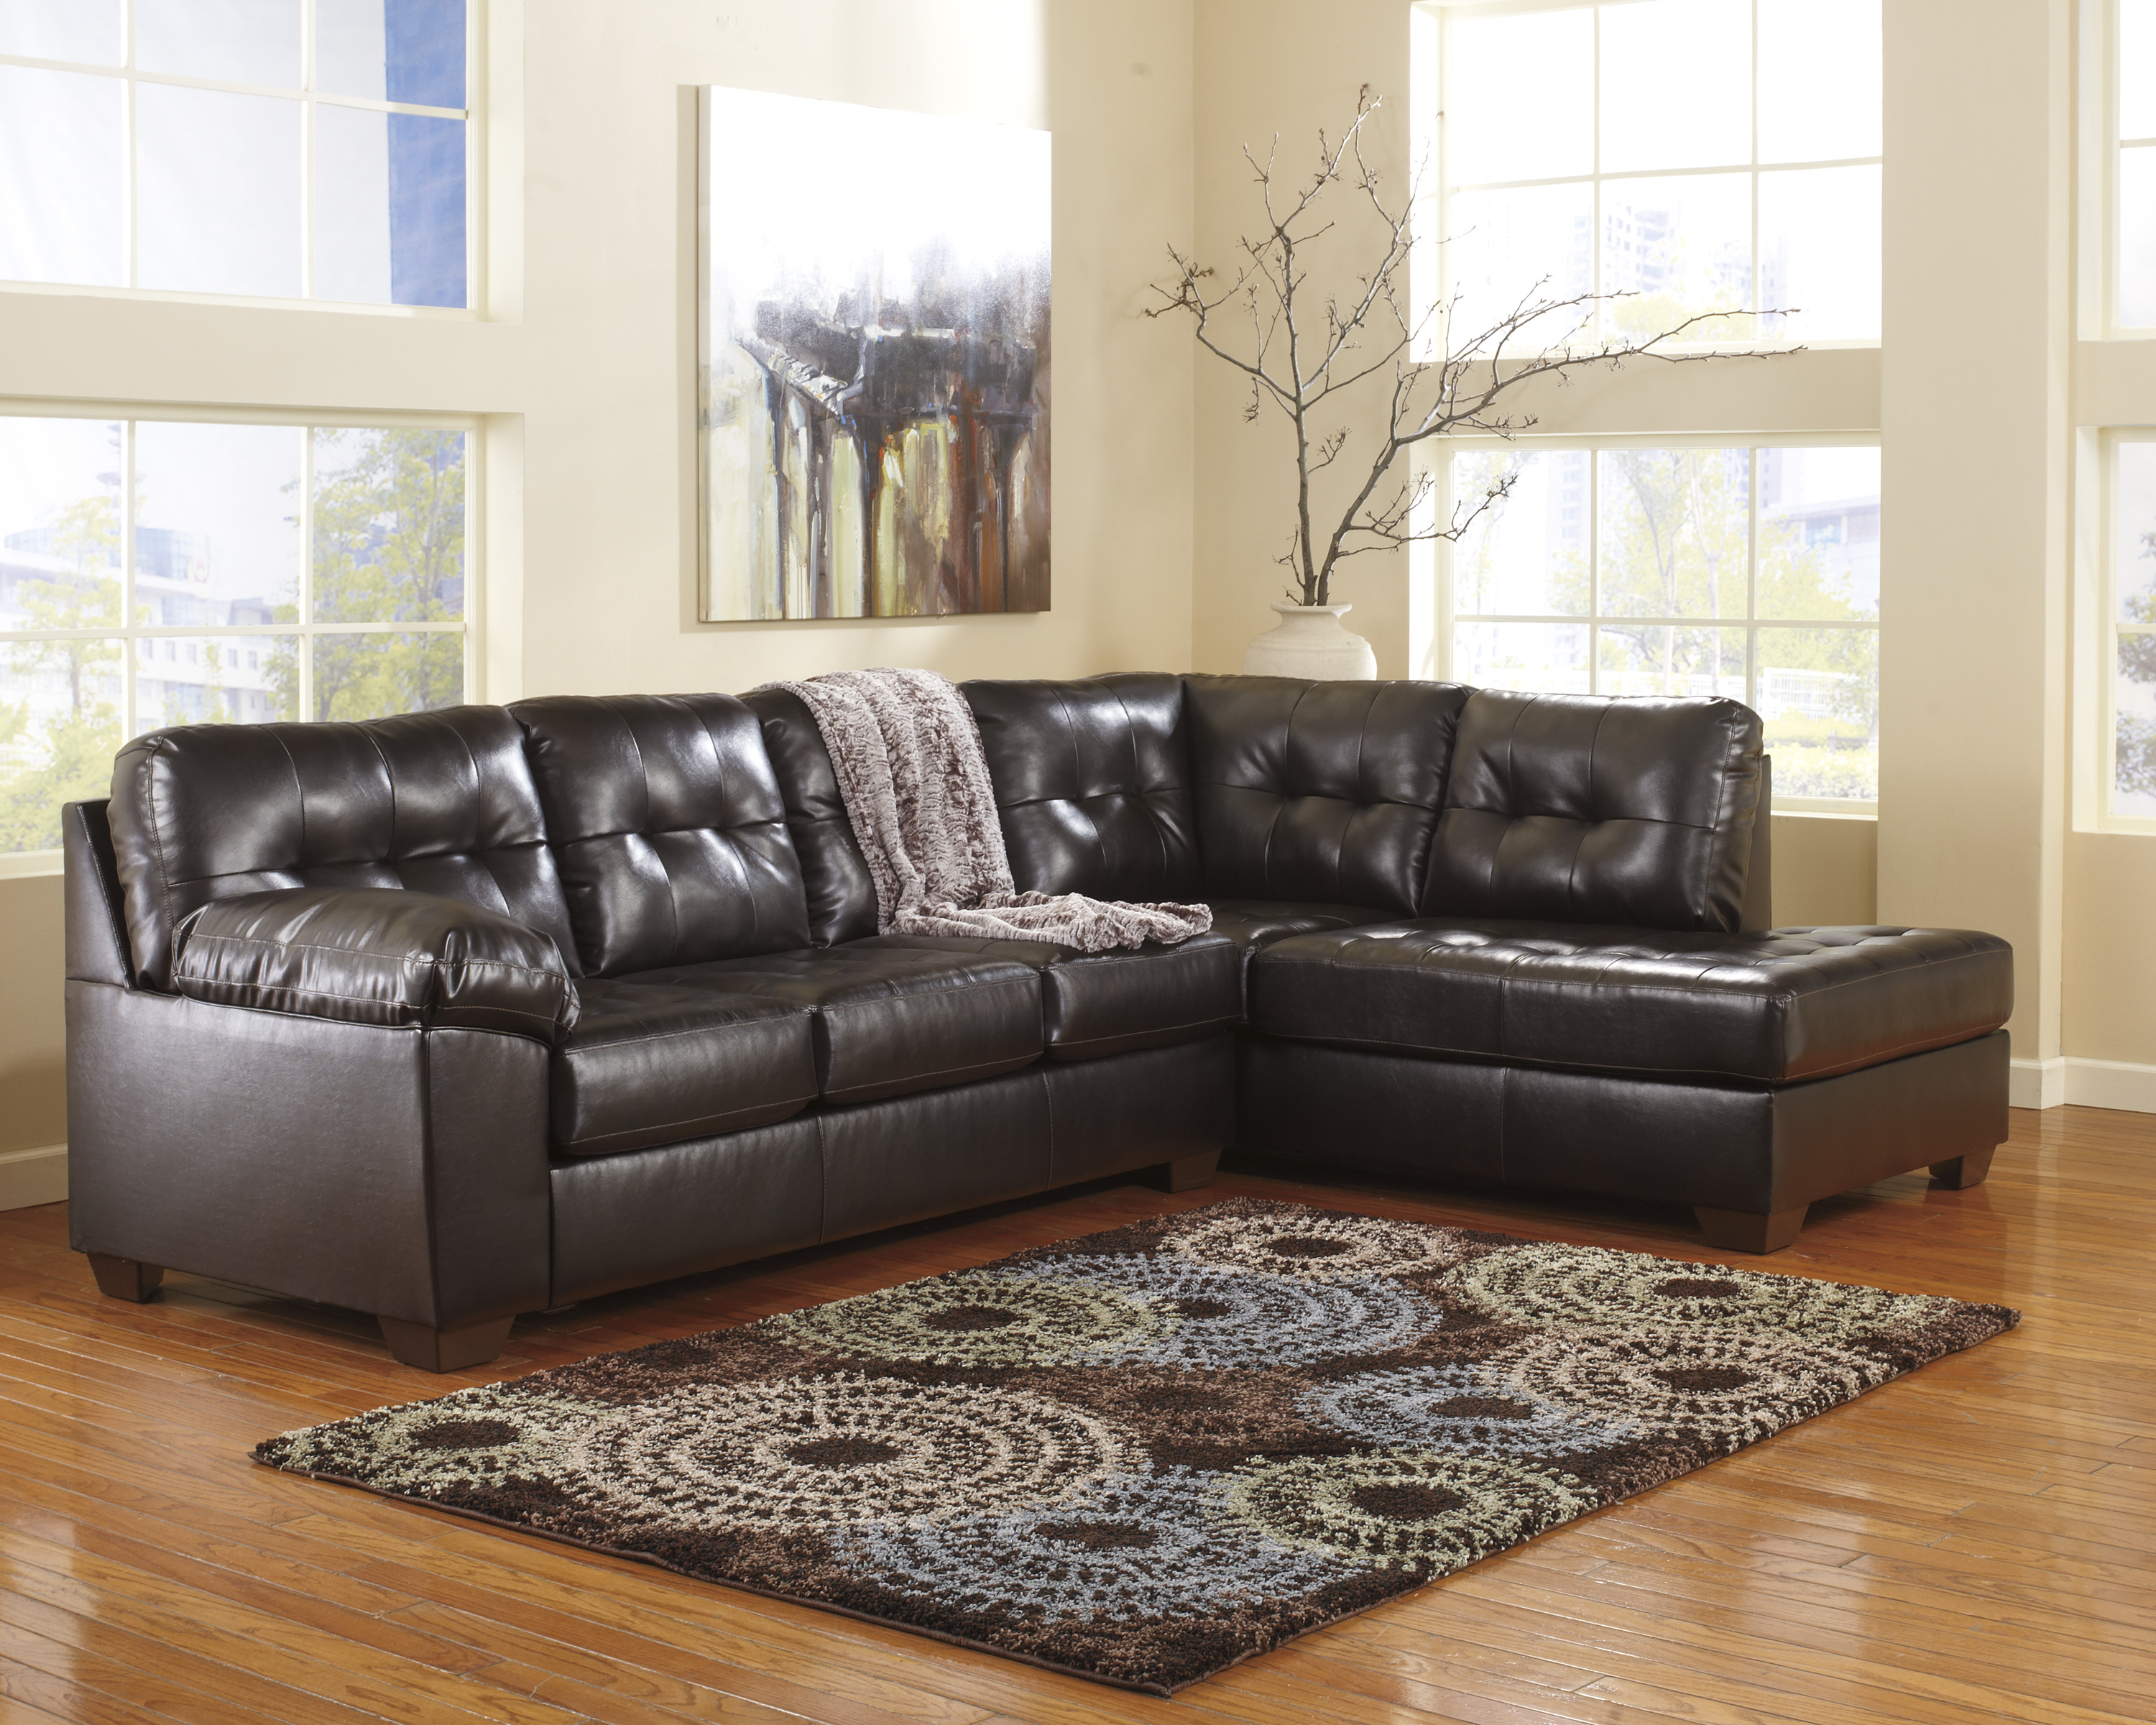 Alliston DuraBlend Chocolate Sectional With Right Chaise  / $23.99 A Week